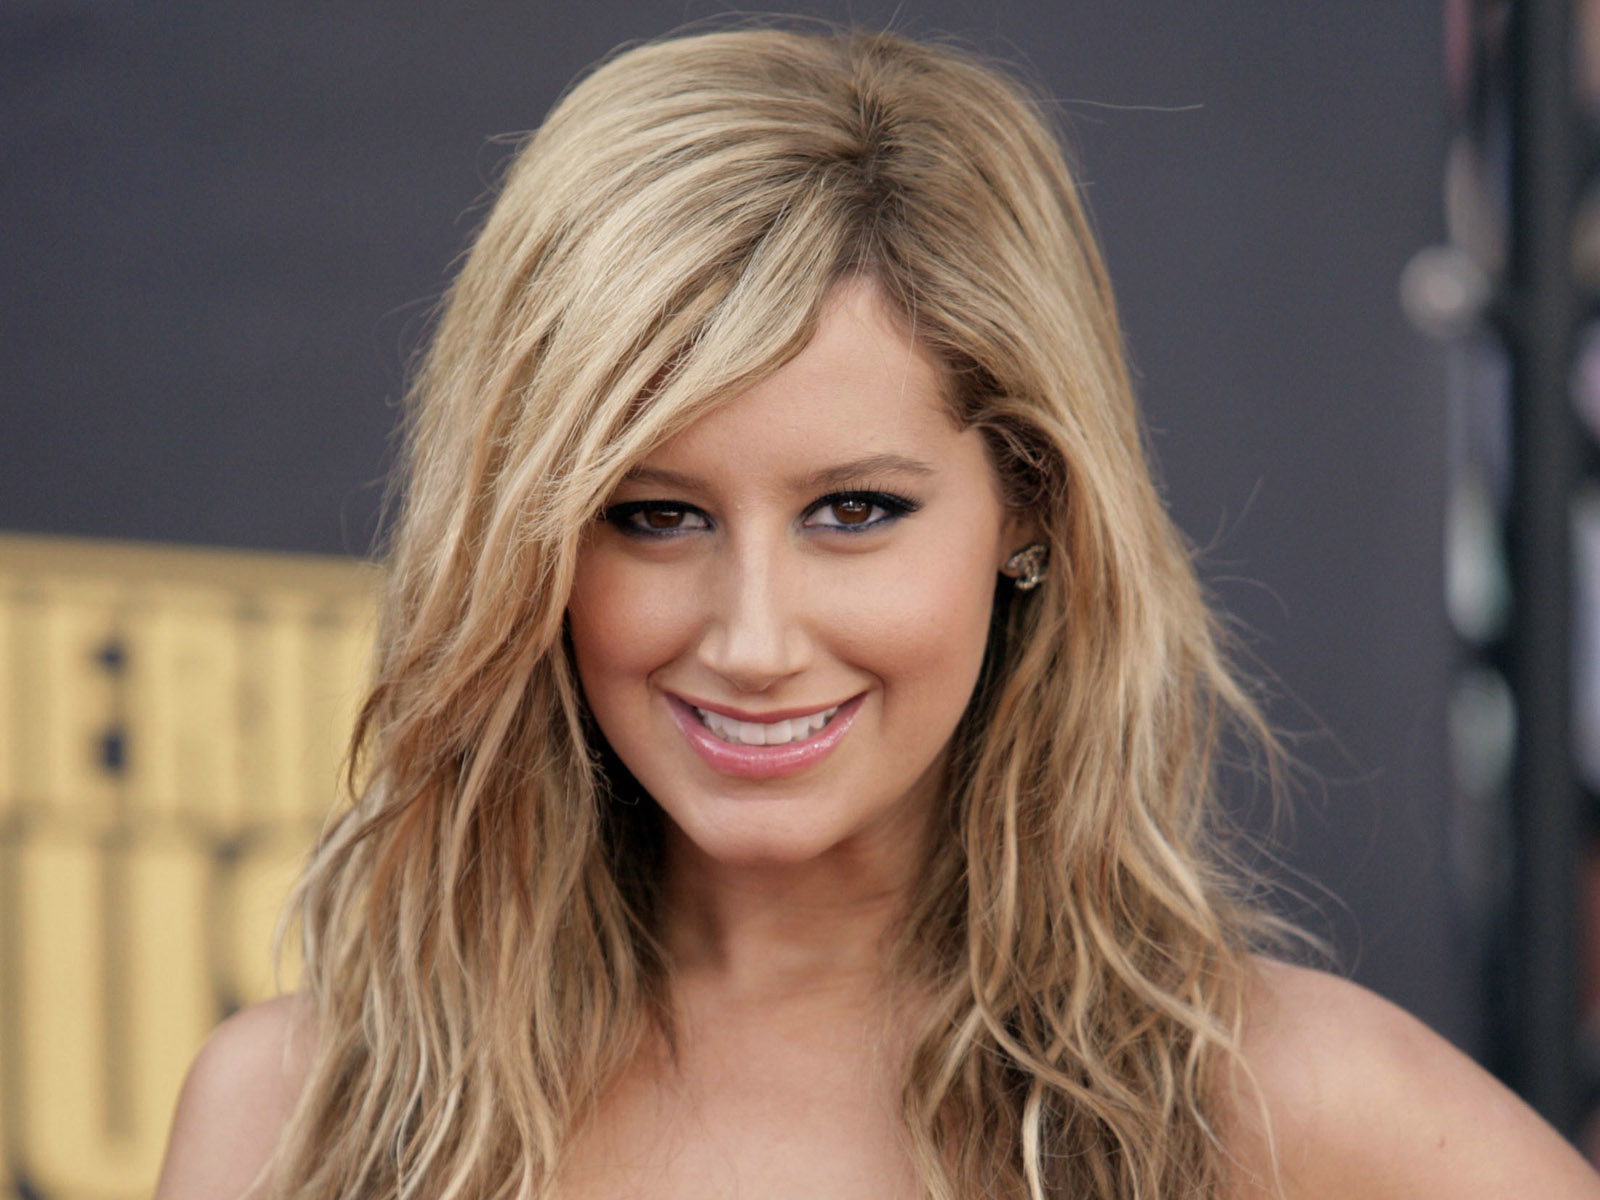 Phenomenal Ashley Tisdale Joins Sons Of Anarchy Hairstyle Inspiration Daily Dogsangcom